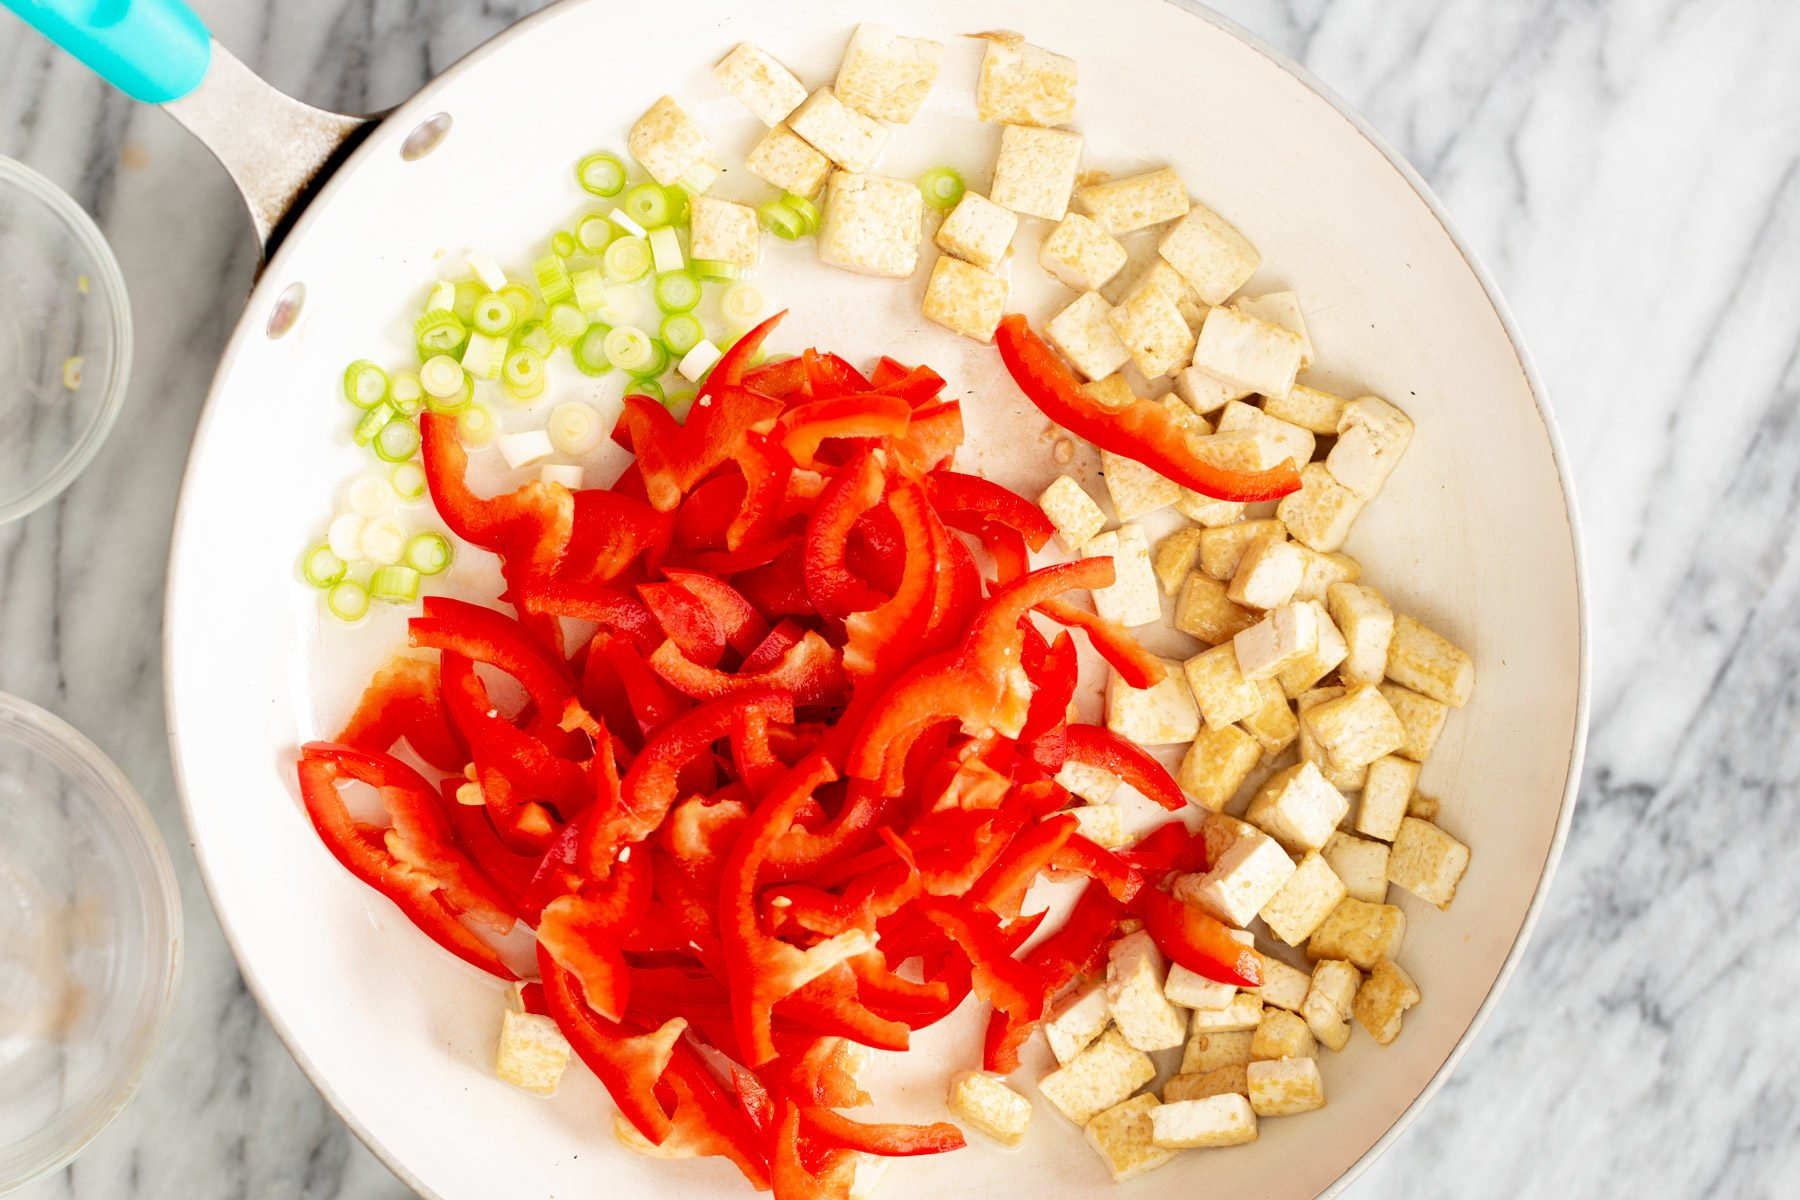 sliced bell peppers, green onion and tofu cubes being fried in a sauteeing pan